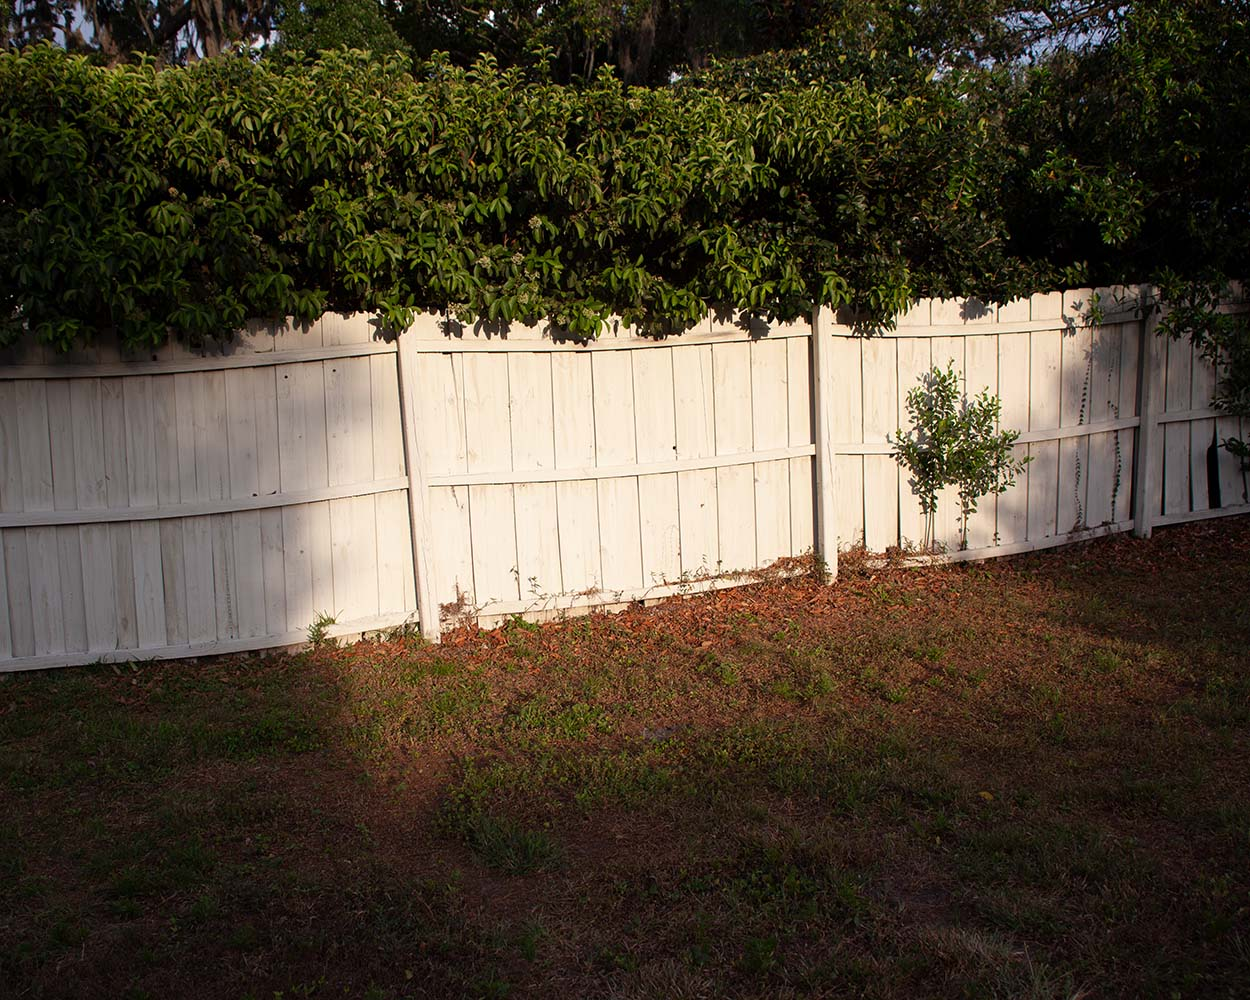 color photo of evening light on white picket fence